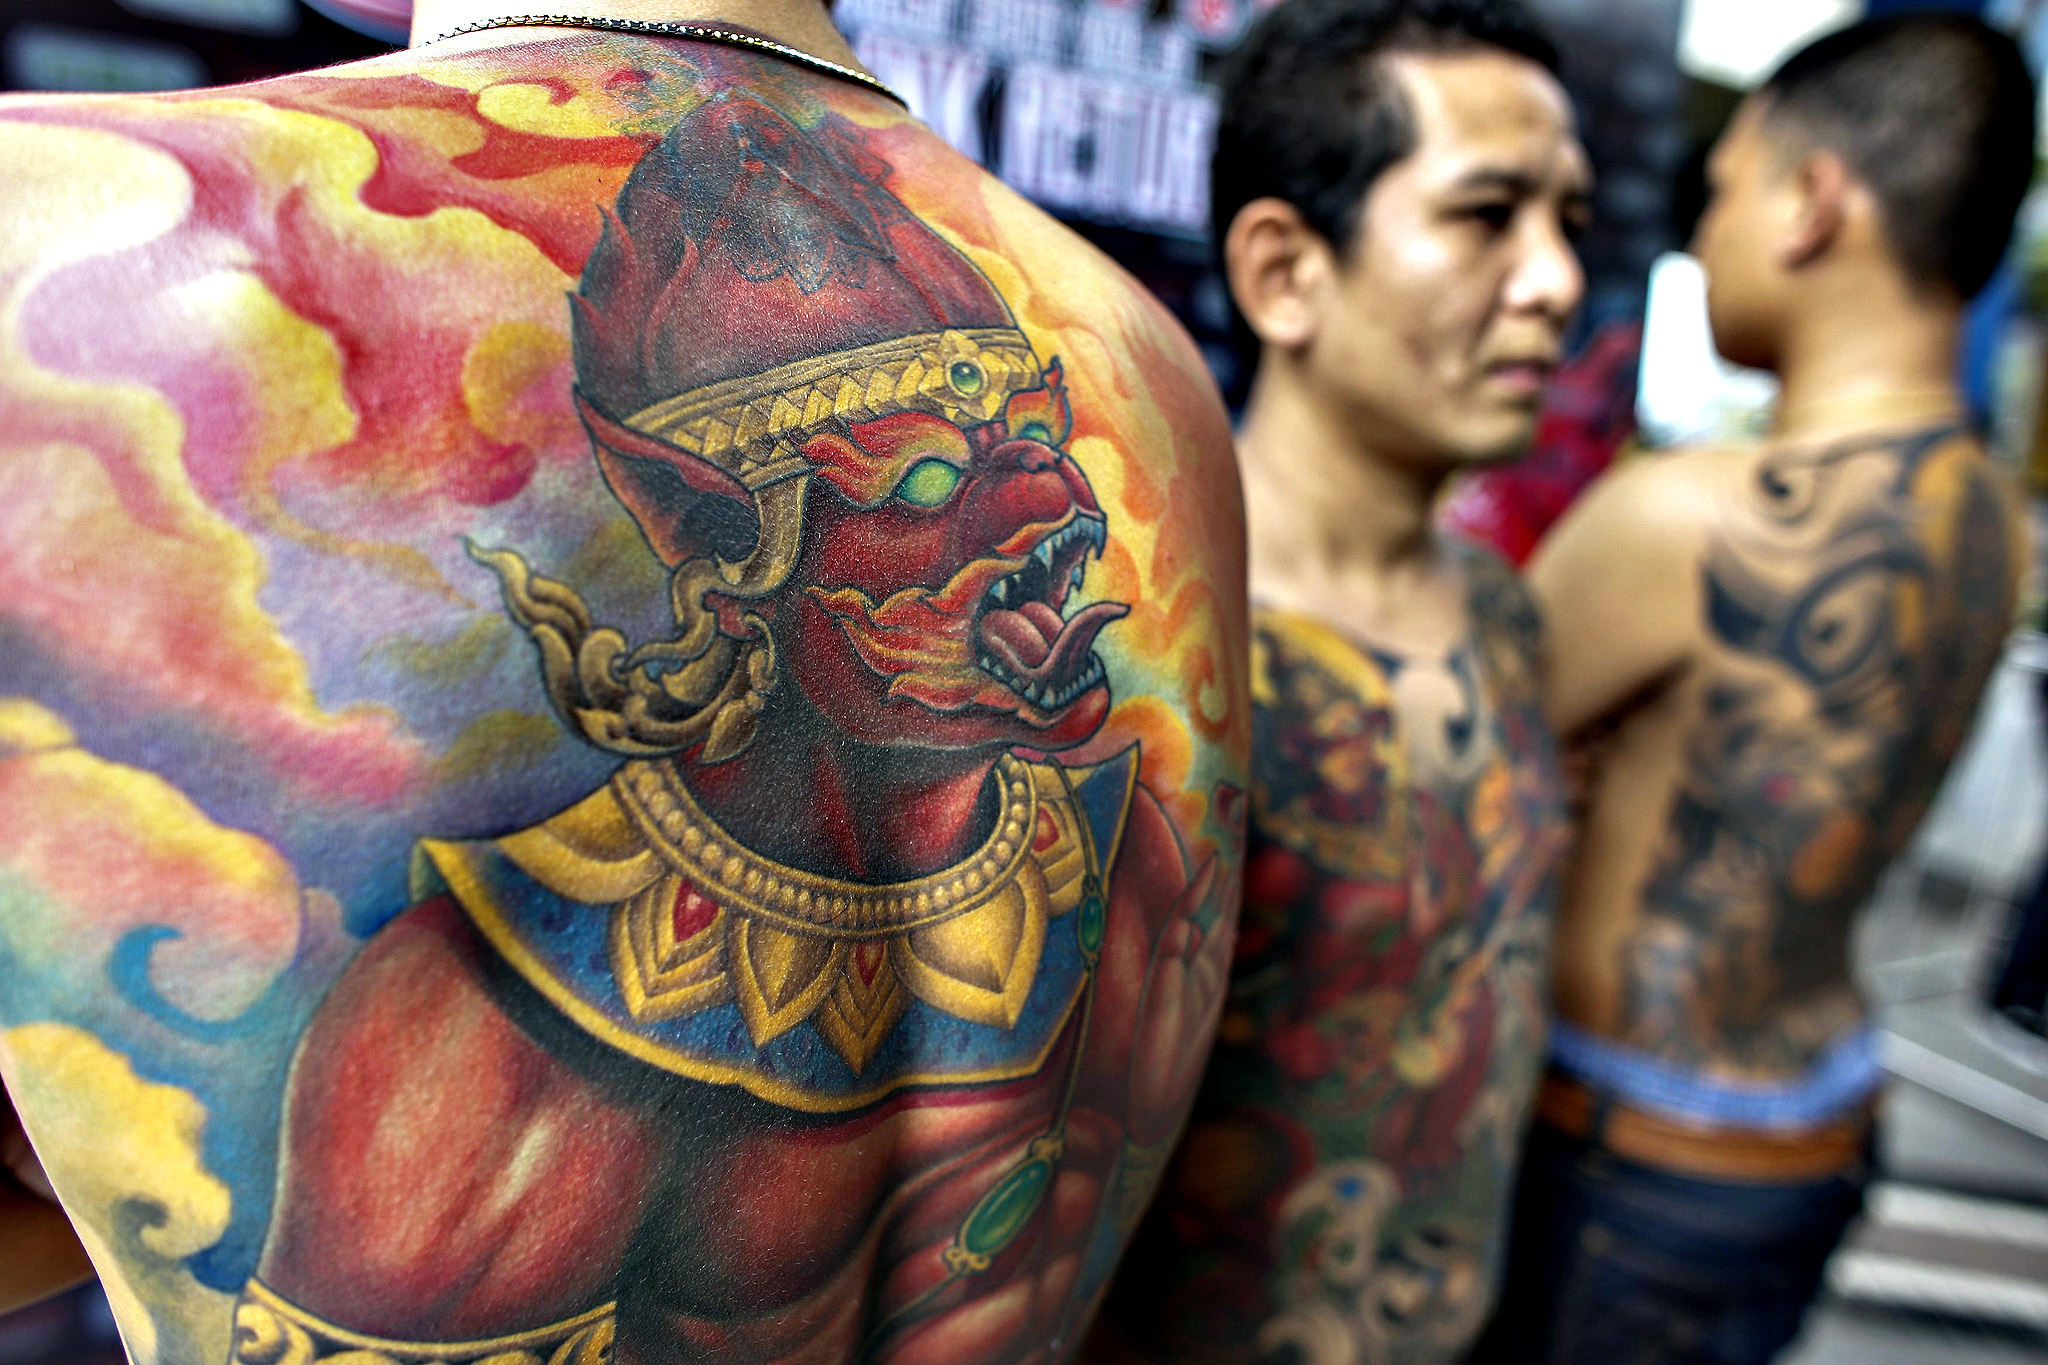 Competitors show their tattoos at the MBK Tattoo Contest 2014 in a shopping mall in Bangkok October 23, 2014.